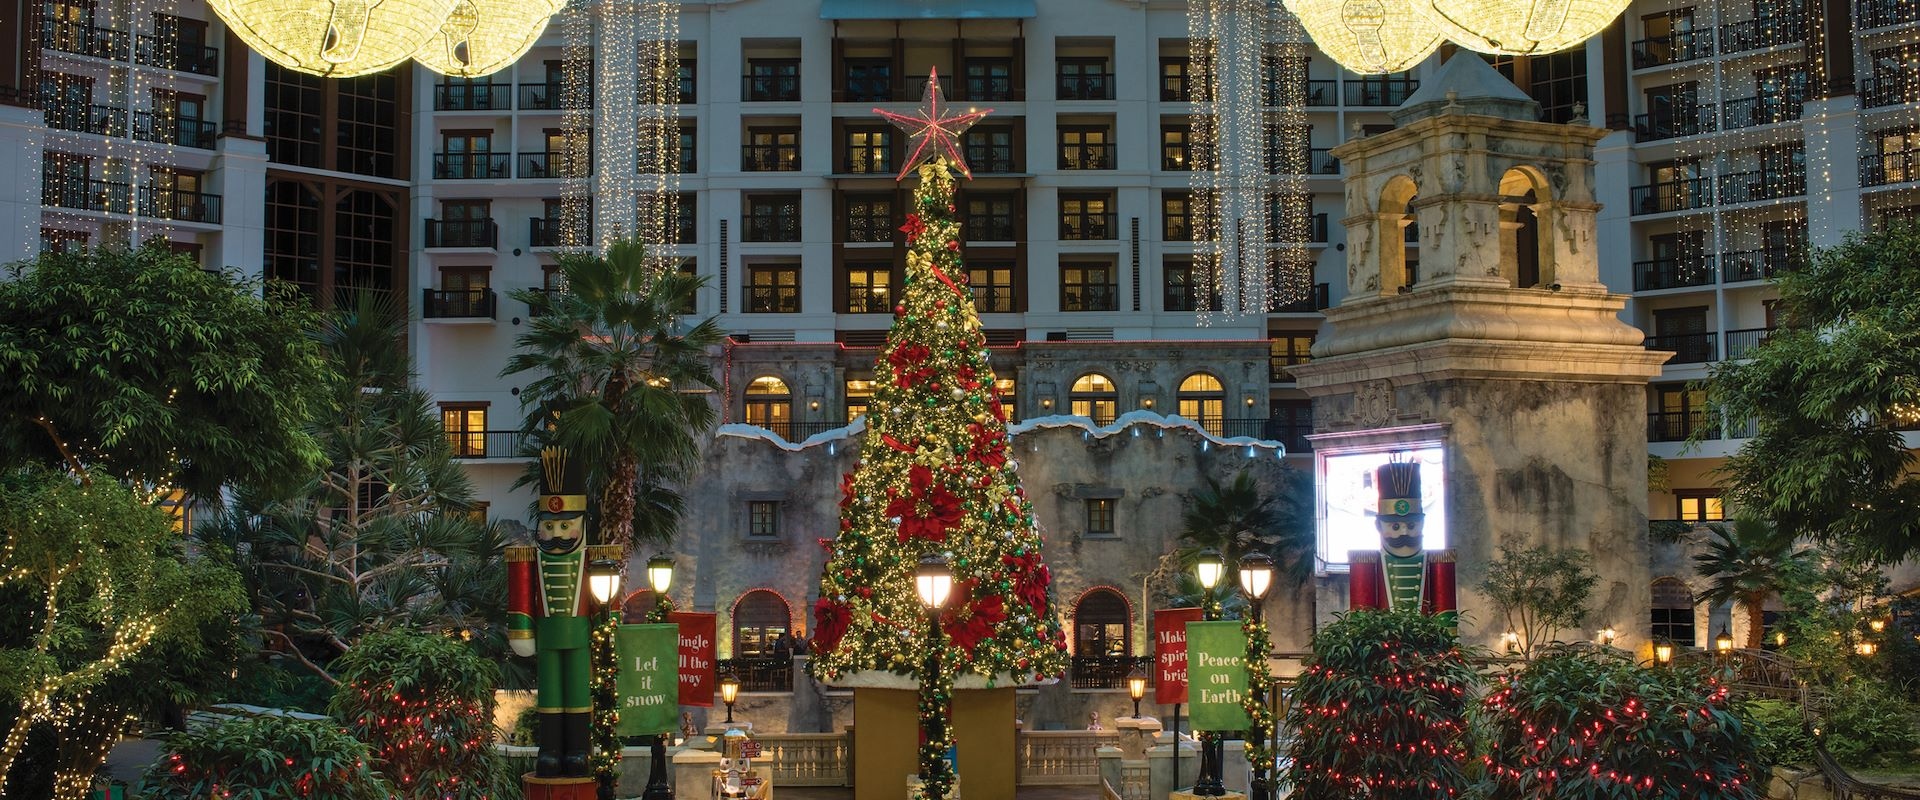 Christmas Tree and lights in Lone Star Atrium at Gaylord Texan